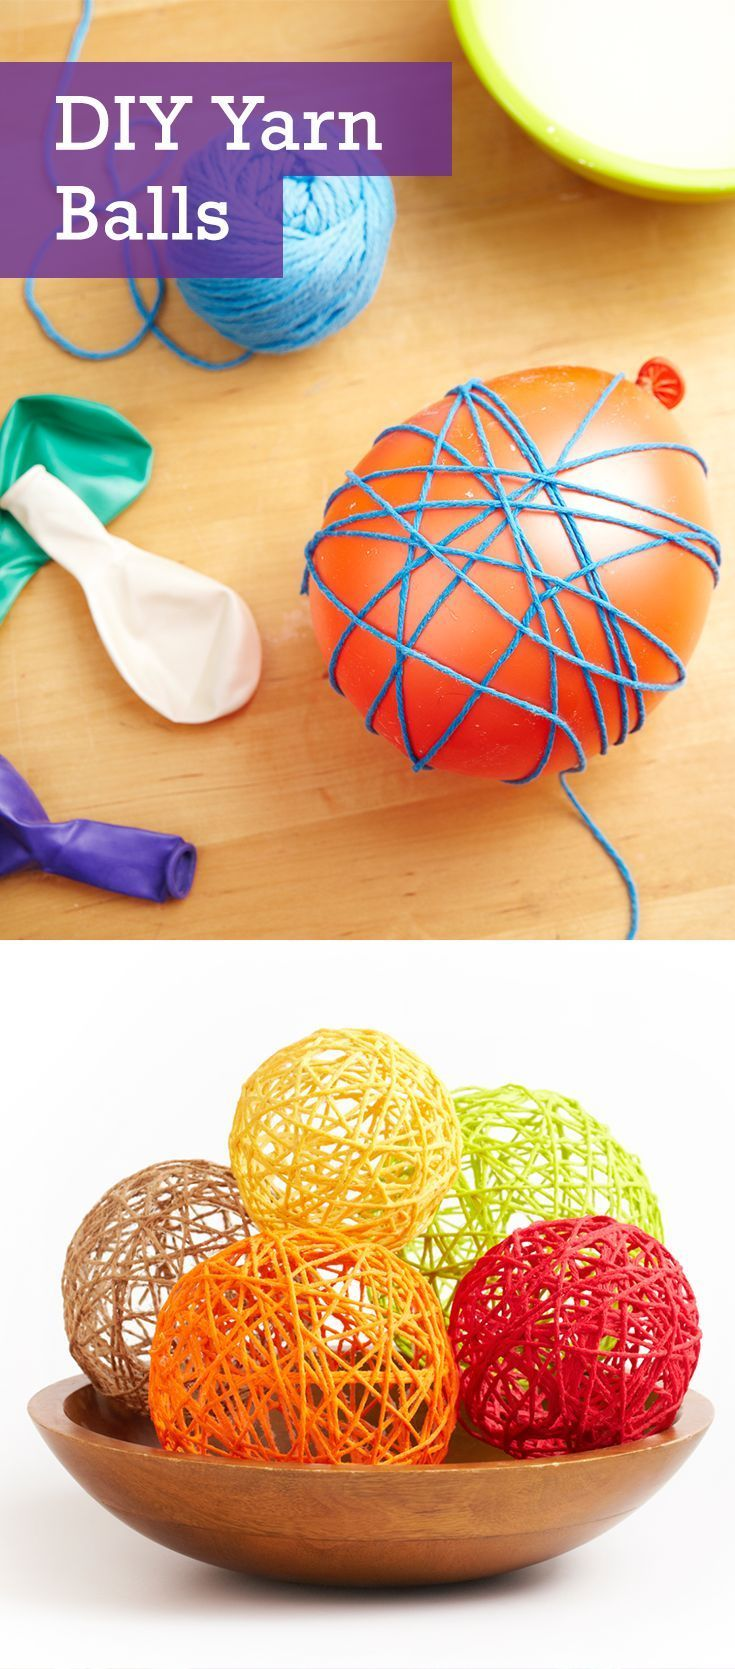 diy yarn balls                                                                                                                                                      More